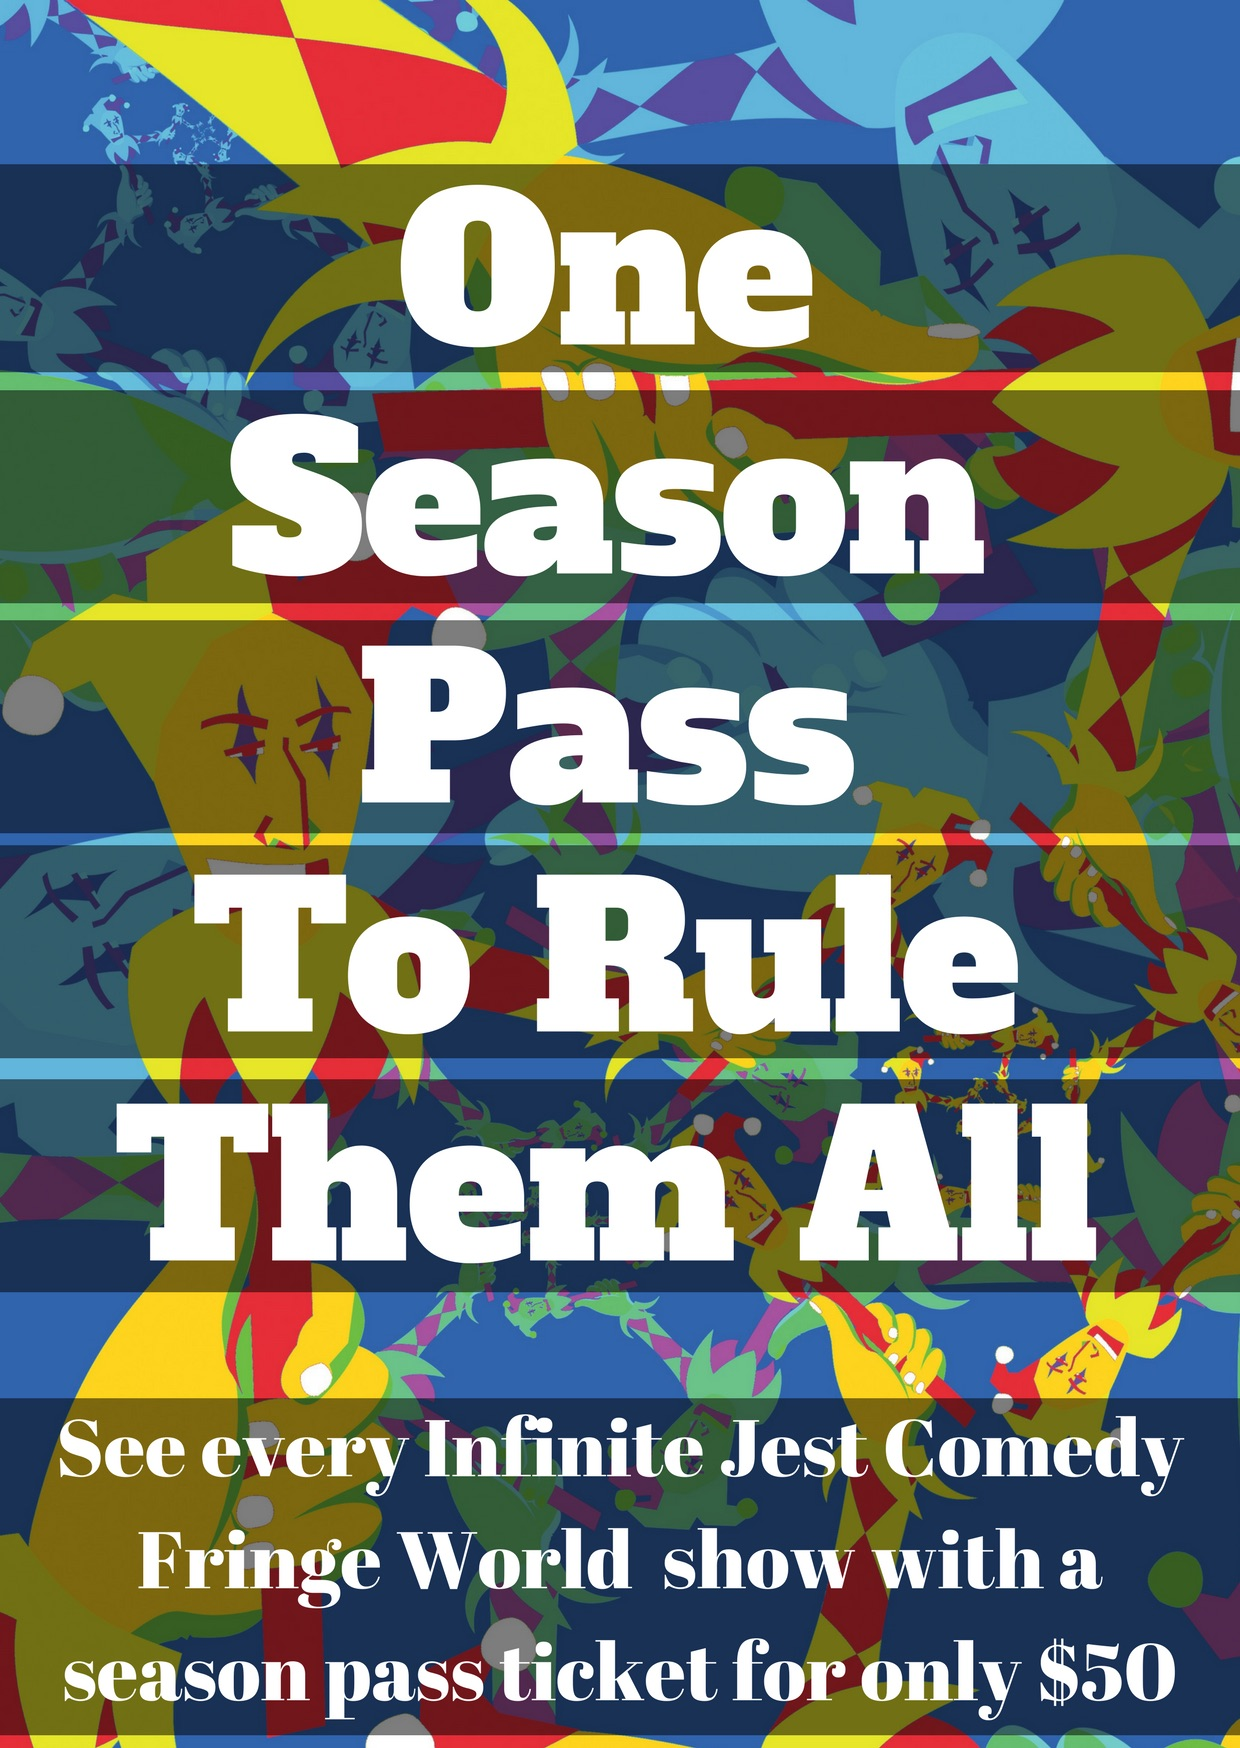 Buy a season pass to see every infinite jest comedy-produced show this fringe world. up to 10 shows for only $50 total